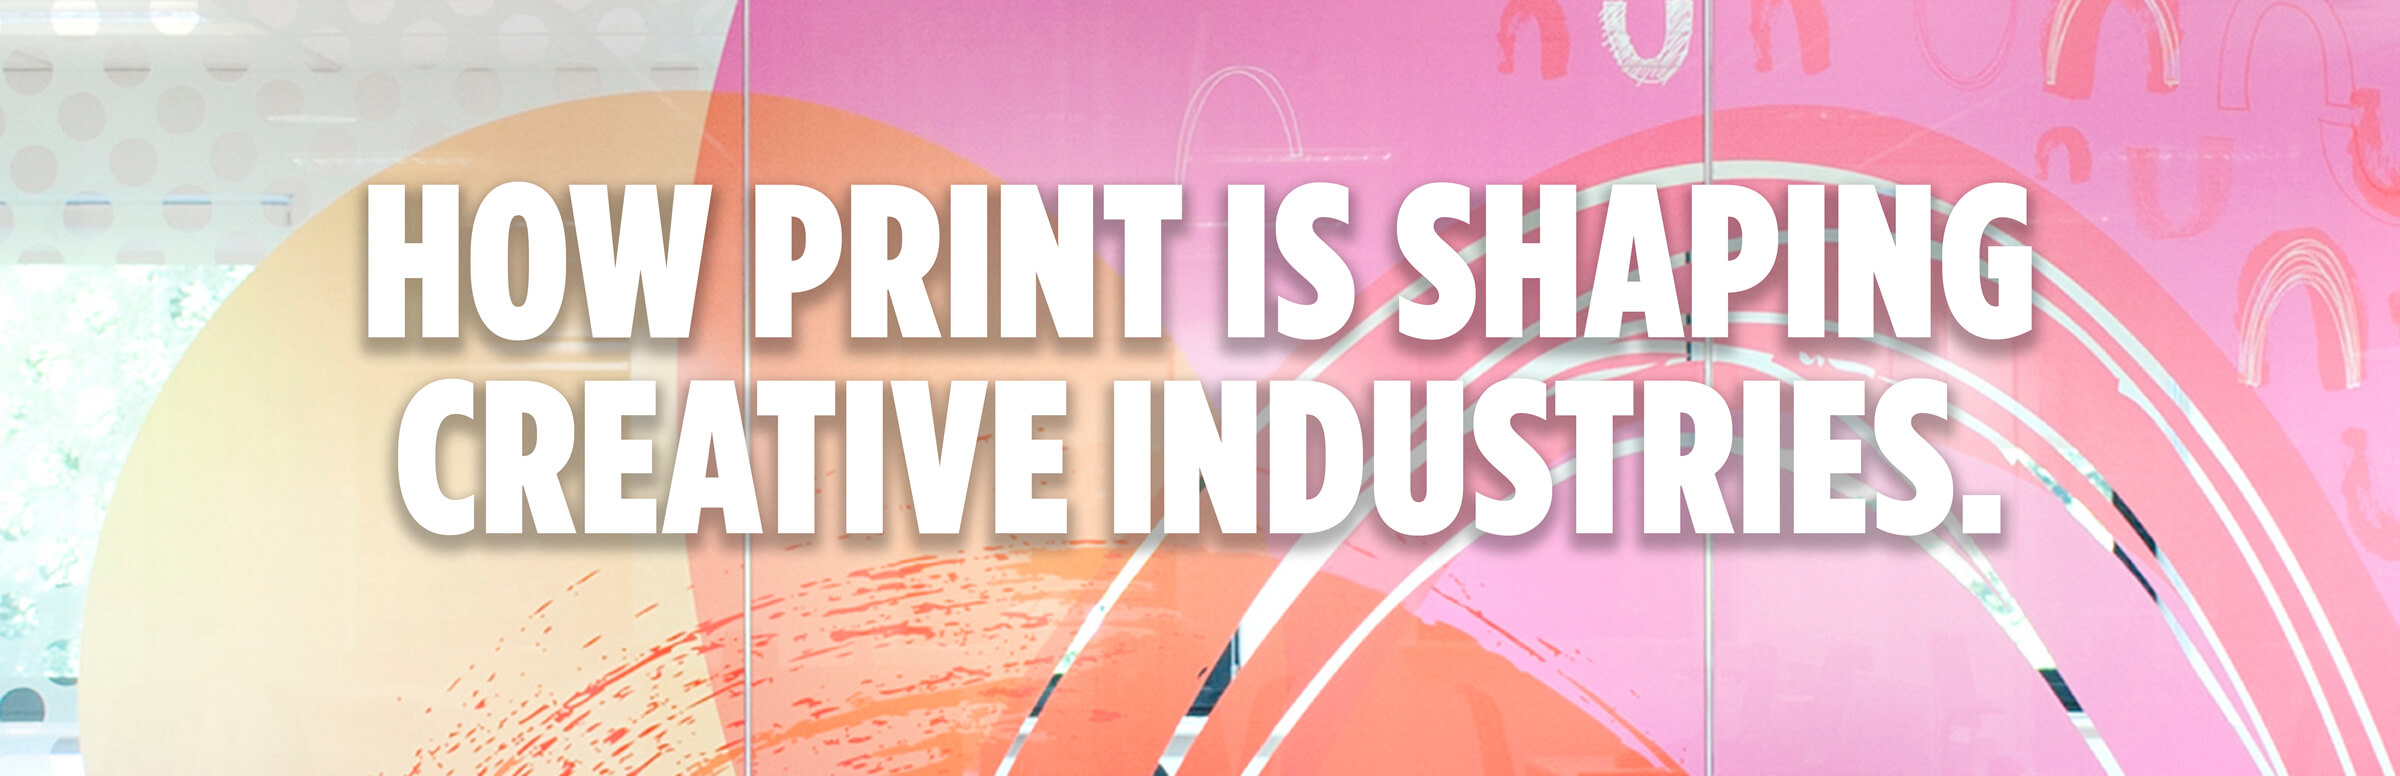 How Print Is Shaping Creative Industries